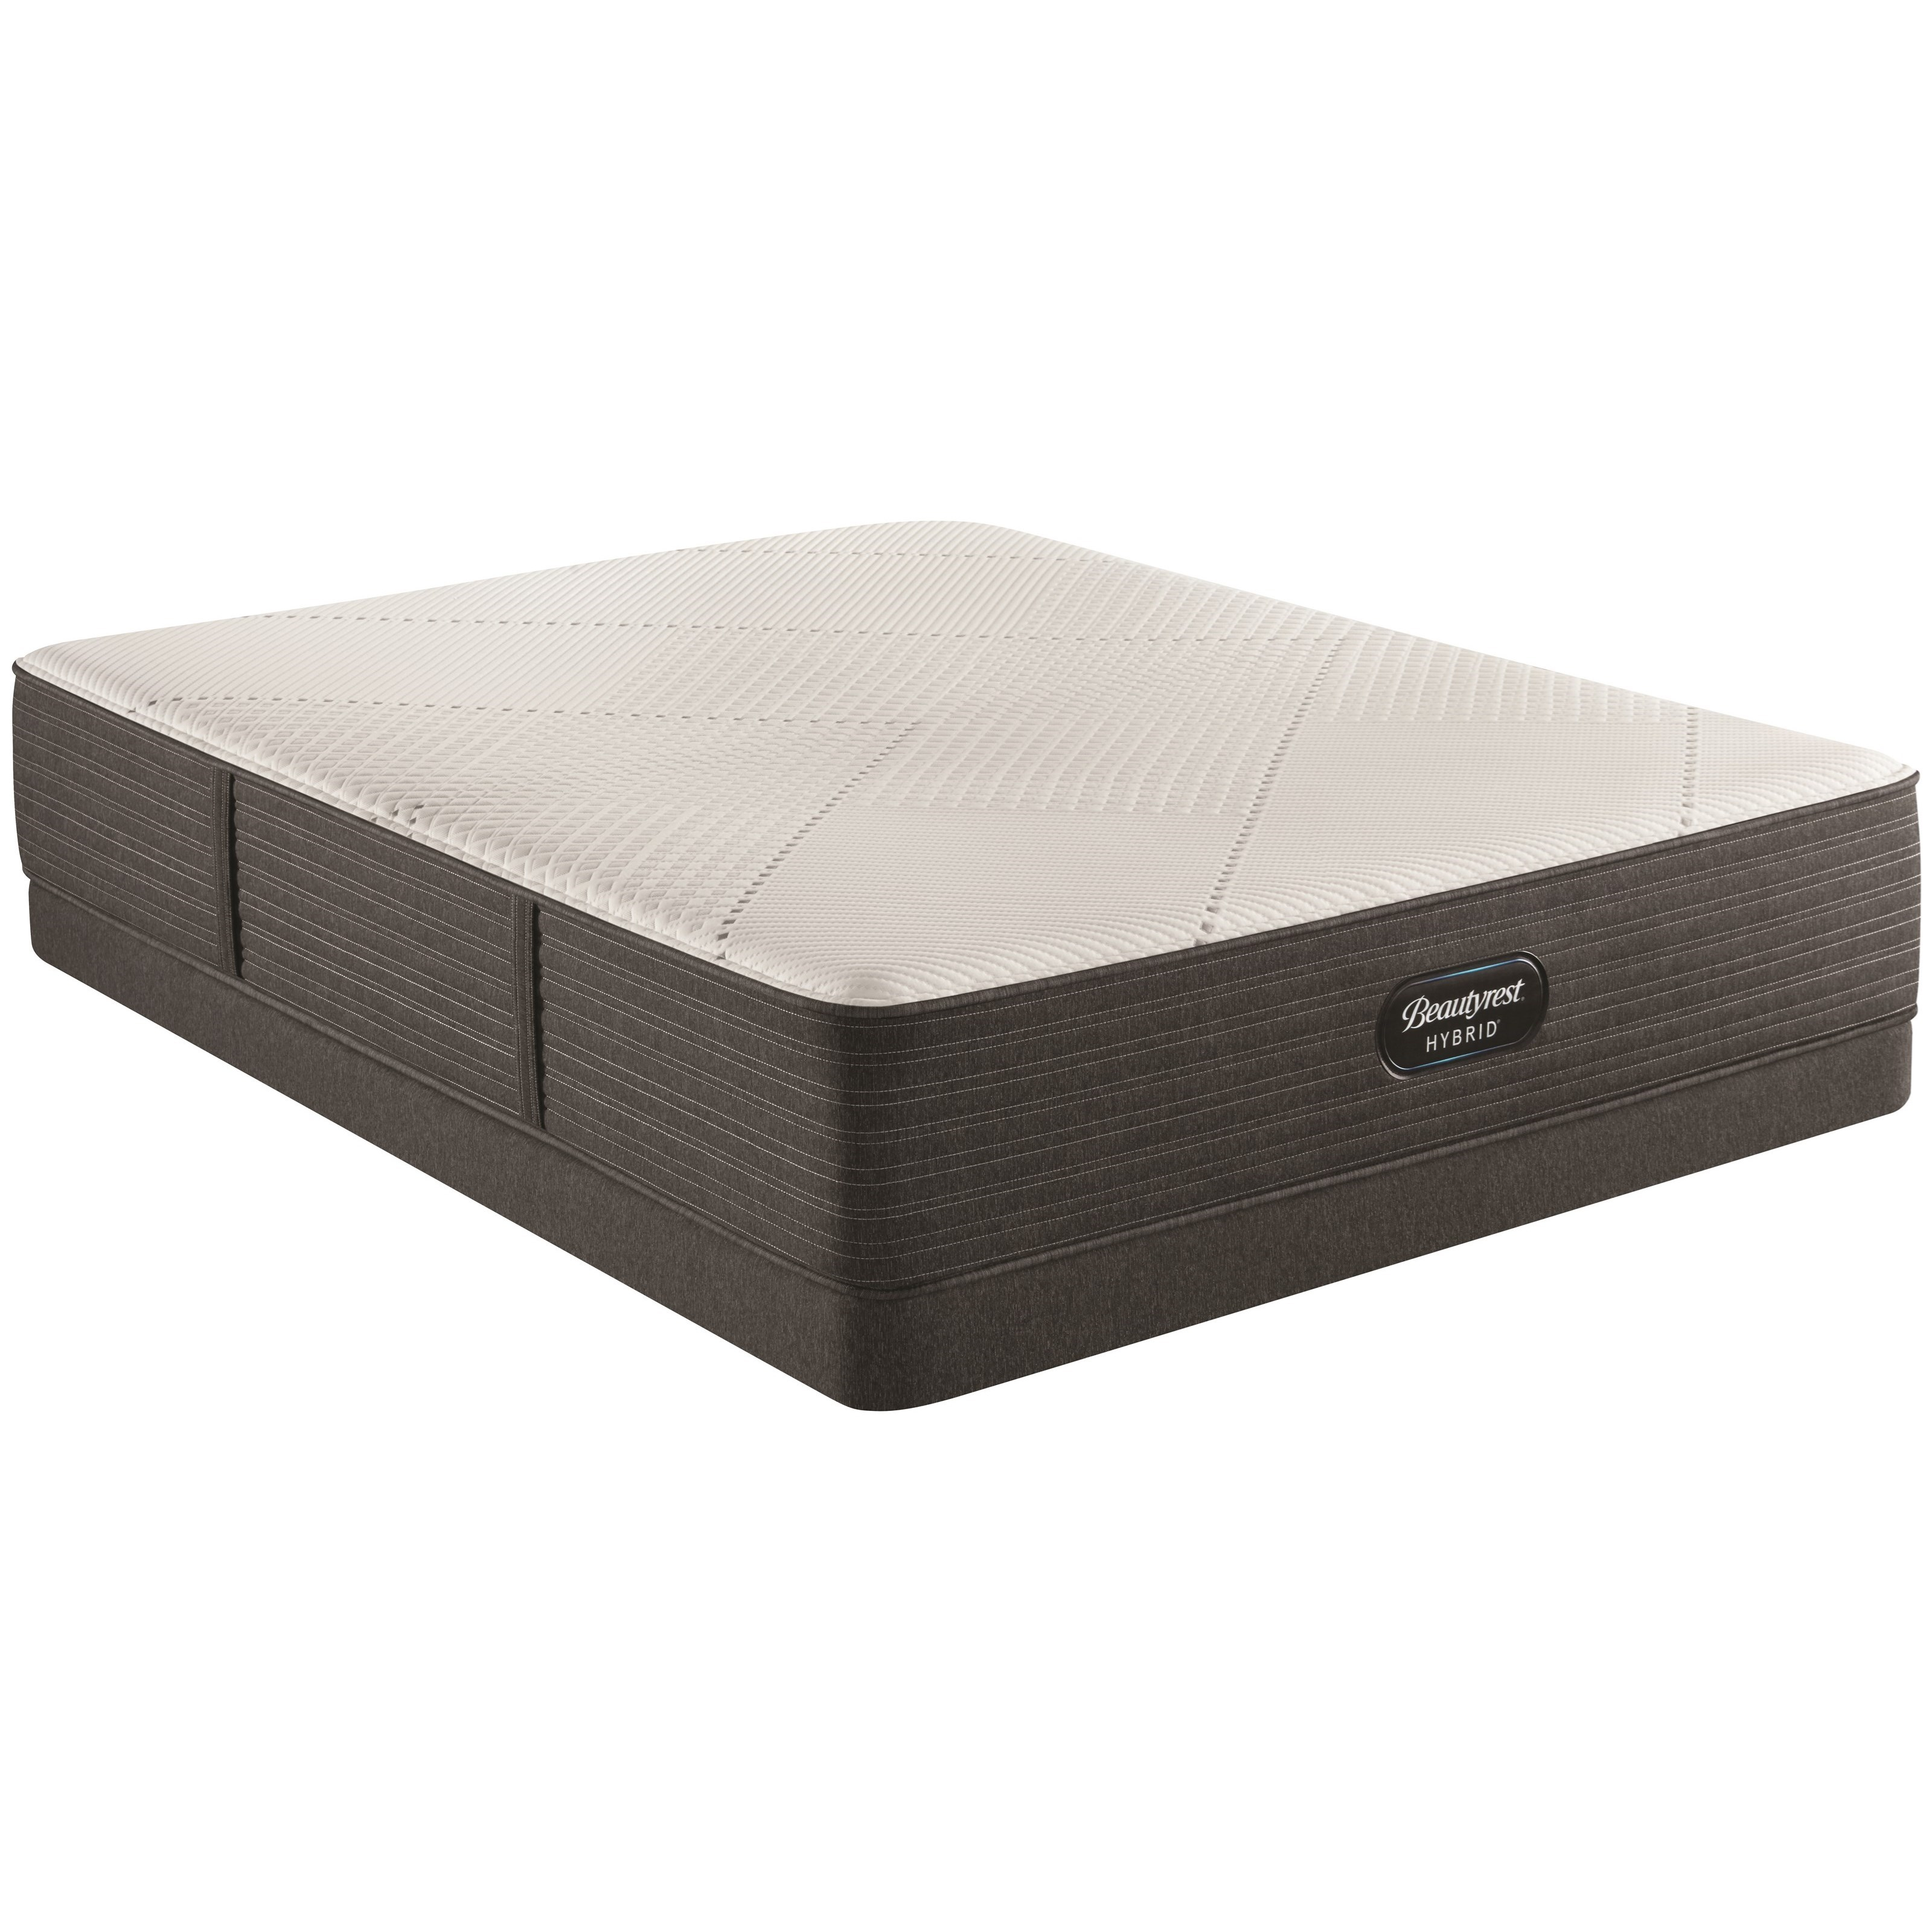 "BRX1000-IP Medium Hybrid Twin 13 1/2"" Hybrid Low Profile Set by Beautyrest at SlumberWorld"